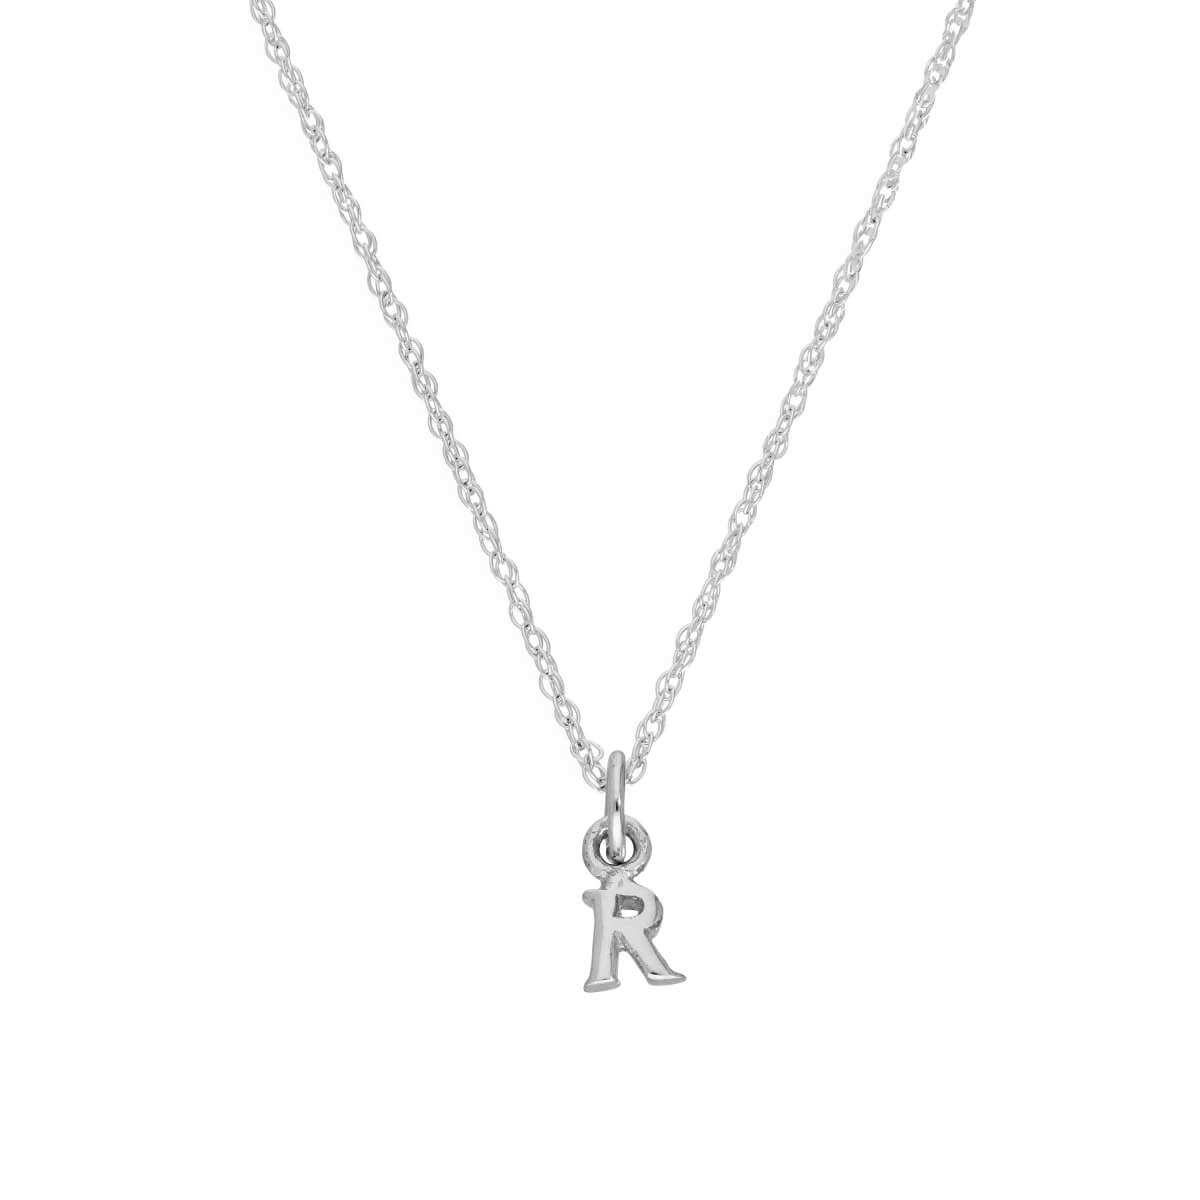 Tiny Sterling Silver Alphabet Letter R Pendant Necklace 14 - 22 Inches